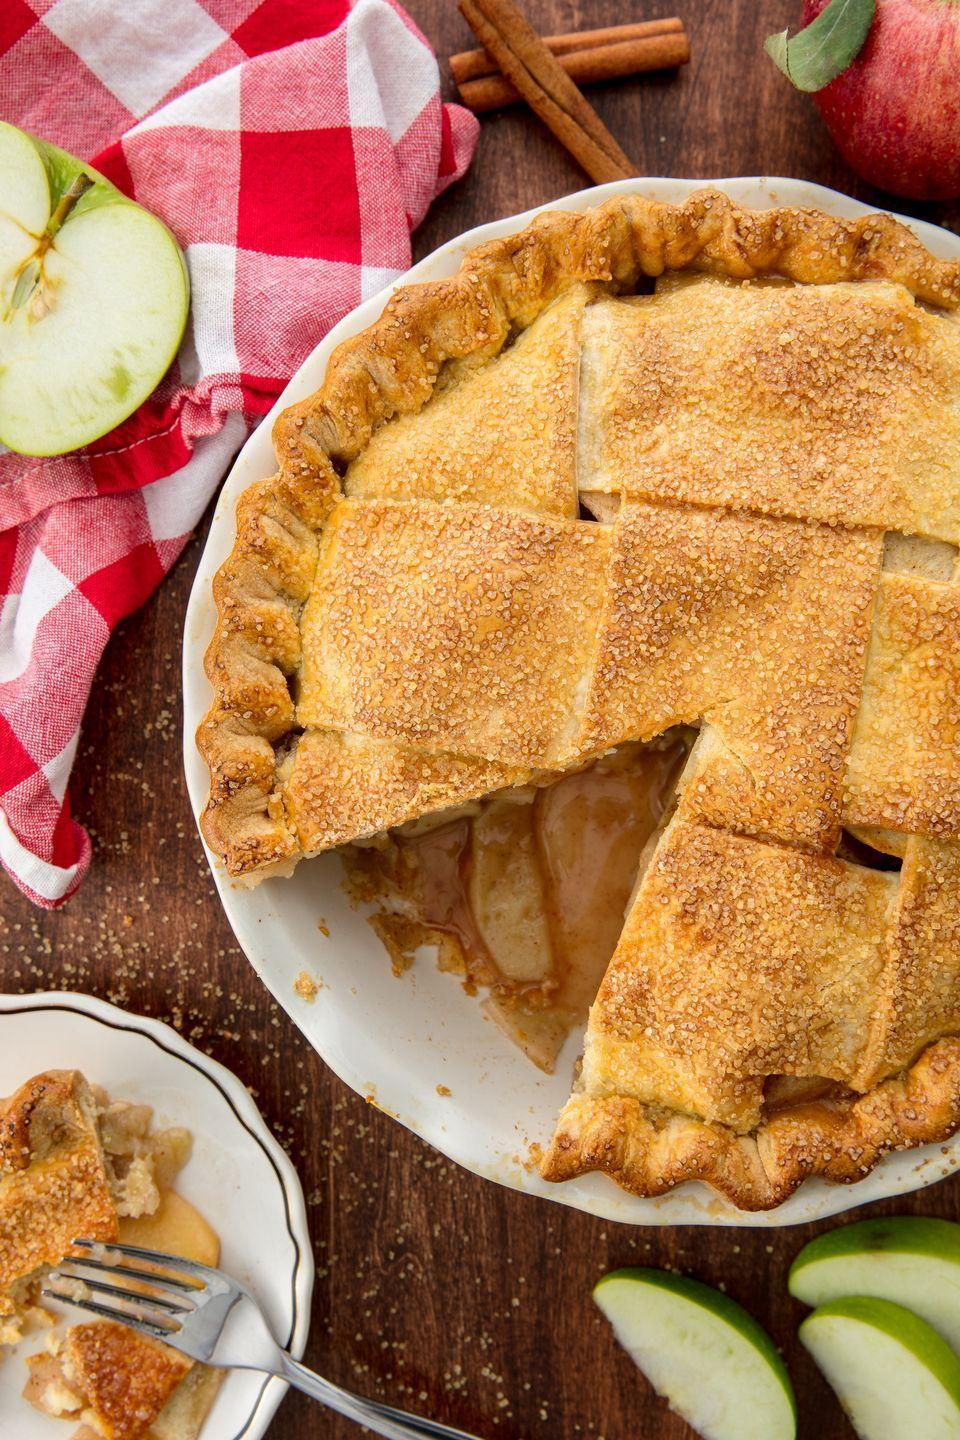 """<p>A homemade apple pie that will even impress your grandma.</p><p>Get the recipe from <a href=""""https://www.delish.com/cooking/recipe-ideas/recipes/a55693/best-homemade-apple-pie-recipe-from-scratch/"""" rel=""""nofollow noopener"""" target=""""_blank"""" data-ylk=""""slk:Delish"""" class=""""link rapid-noclick-resp"""">Delish</a>.</p>"""